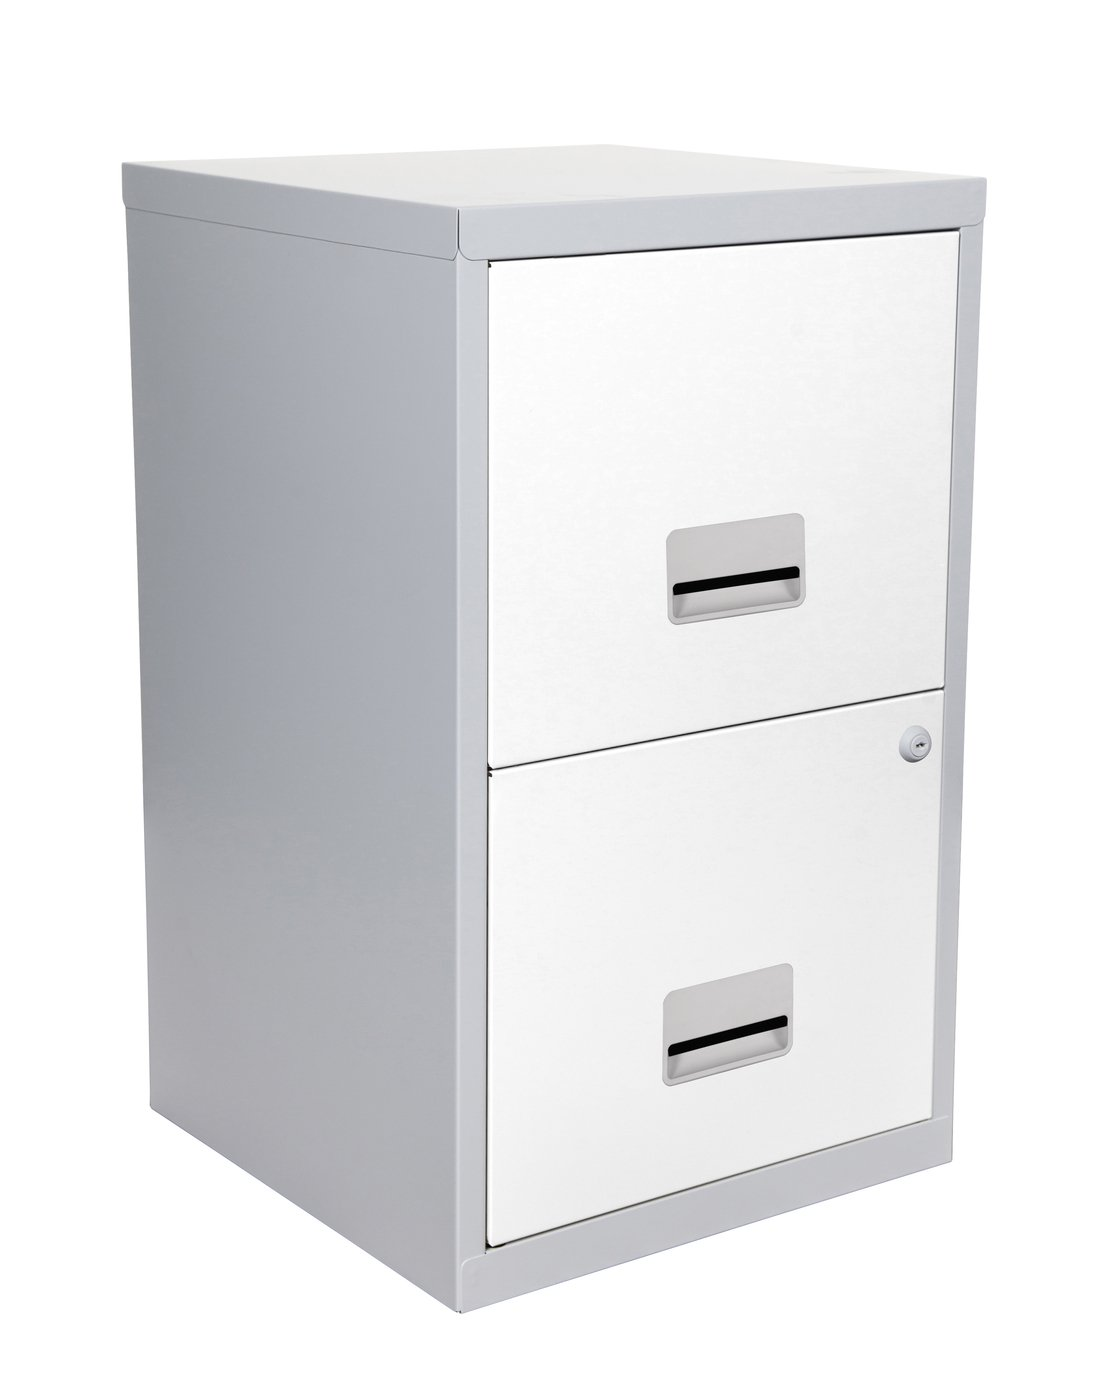 Pierre Henry 2 Drawer Metal Filing Cabinet - Silver & White